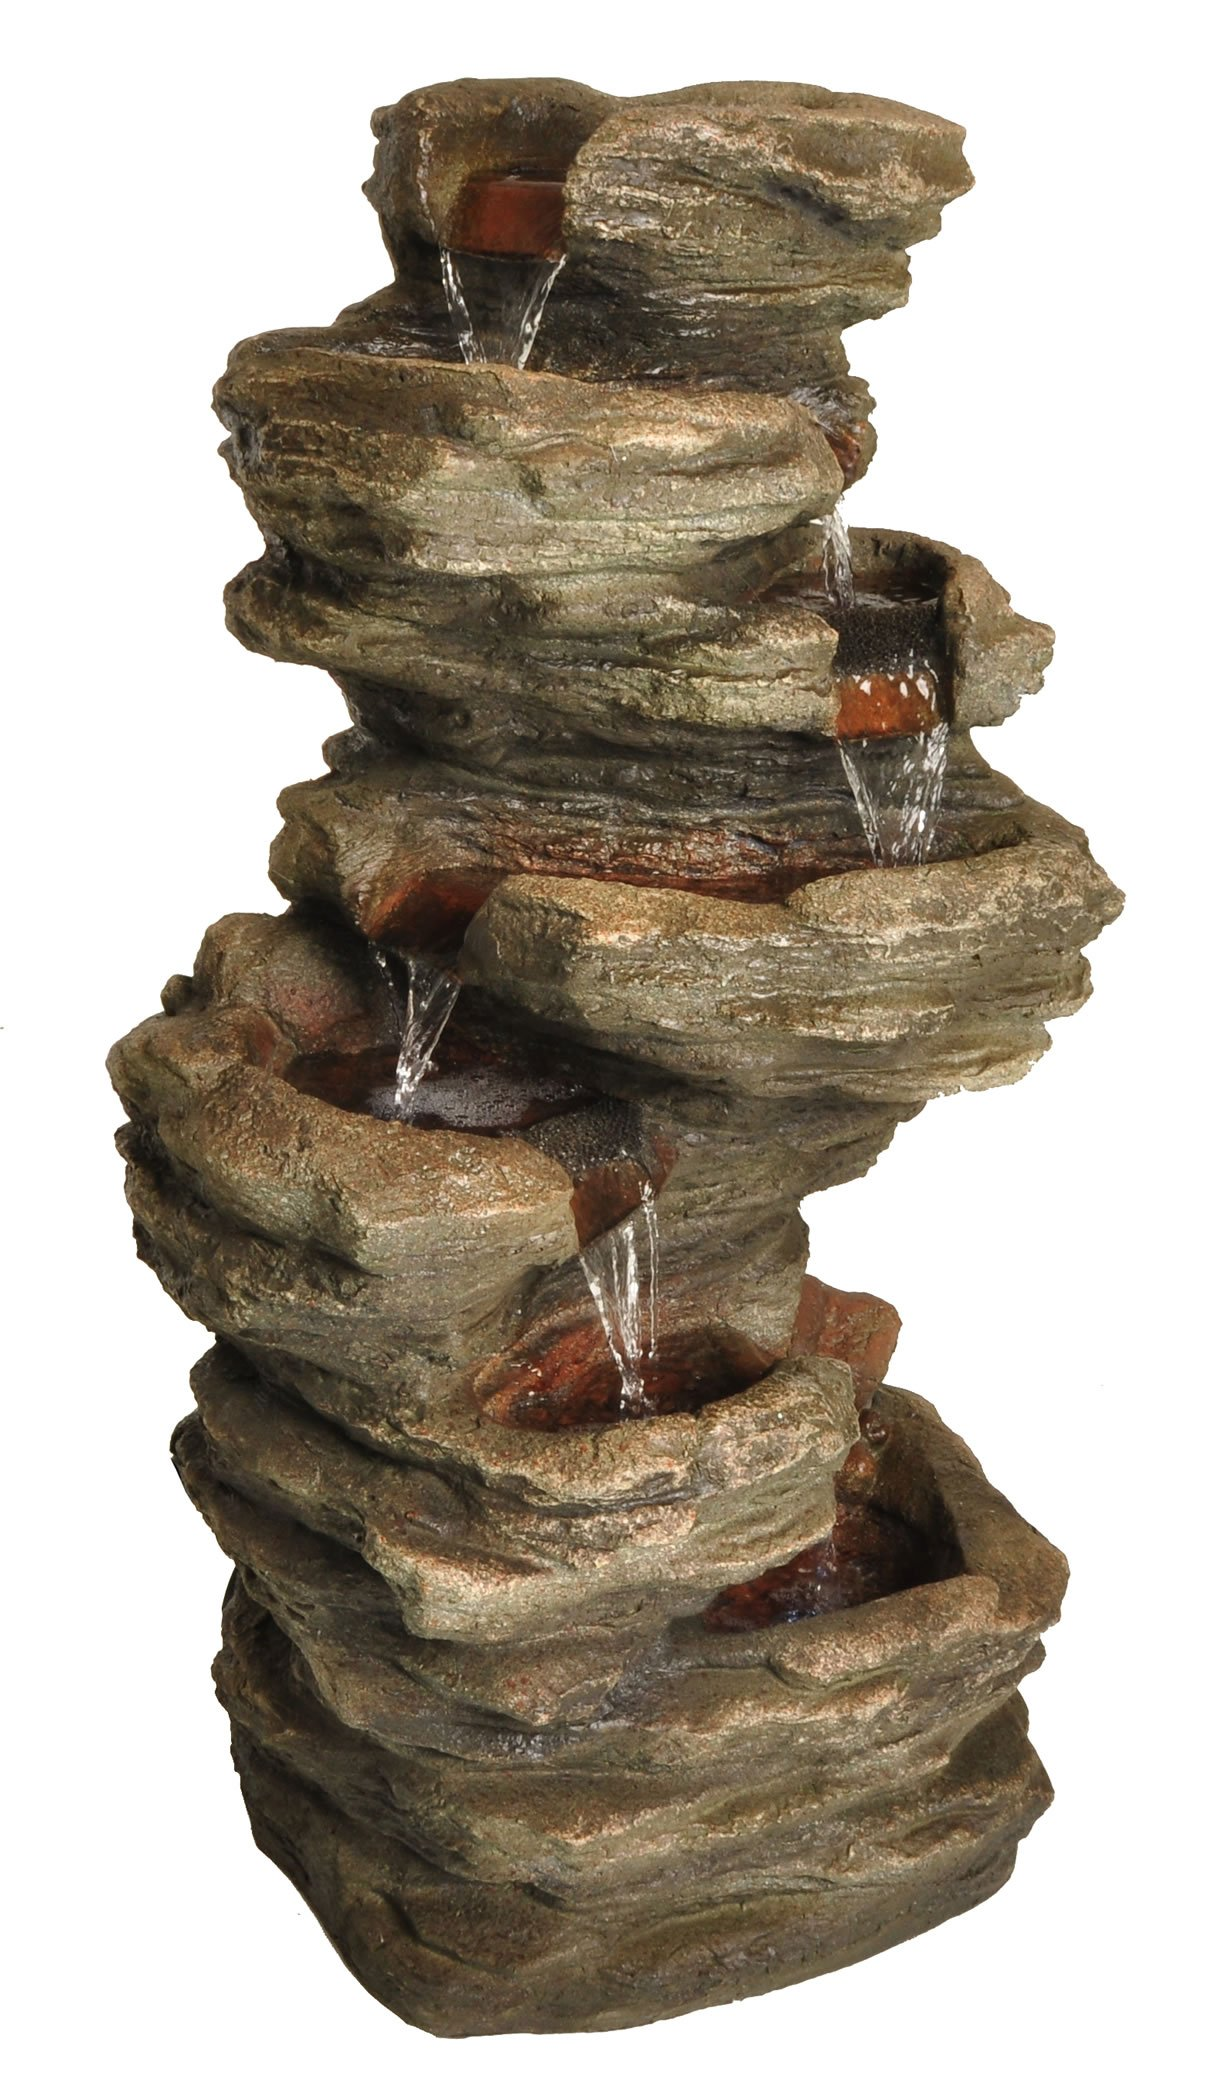 Zenvida Stone Cascading Waterfall Outdoor Garden Fountain 32''